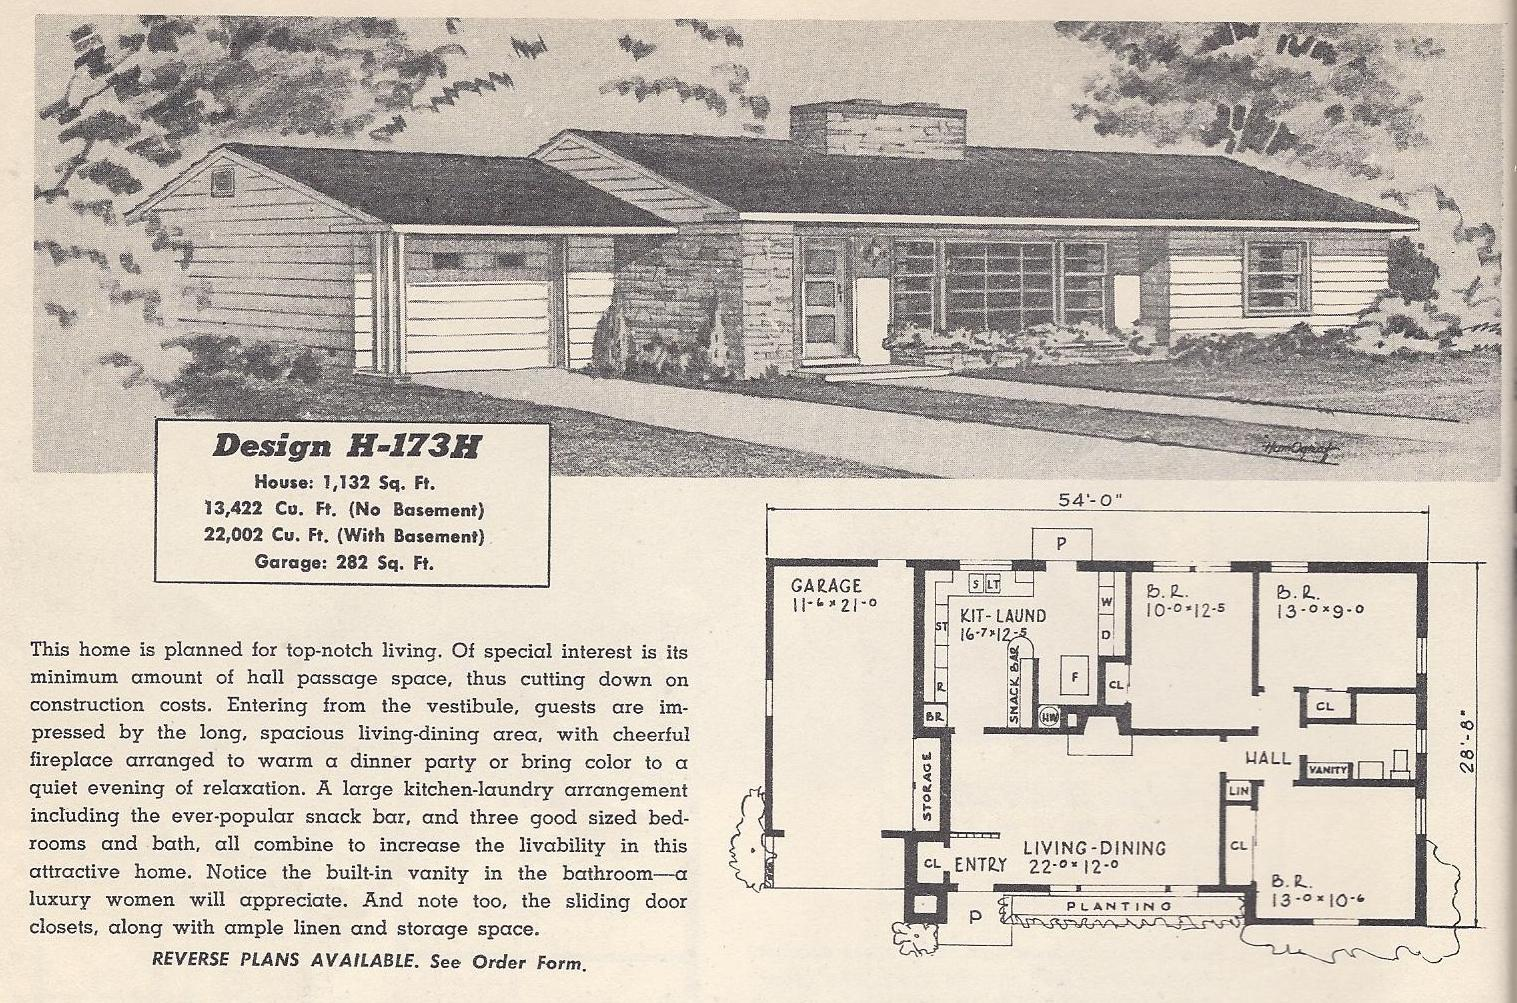 Vintage house plans 173h antique alter ego - Retro home design ...